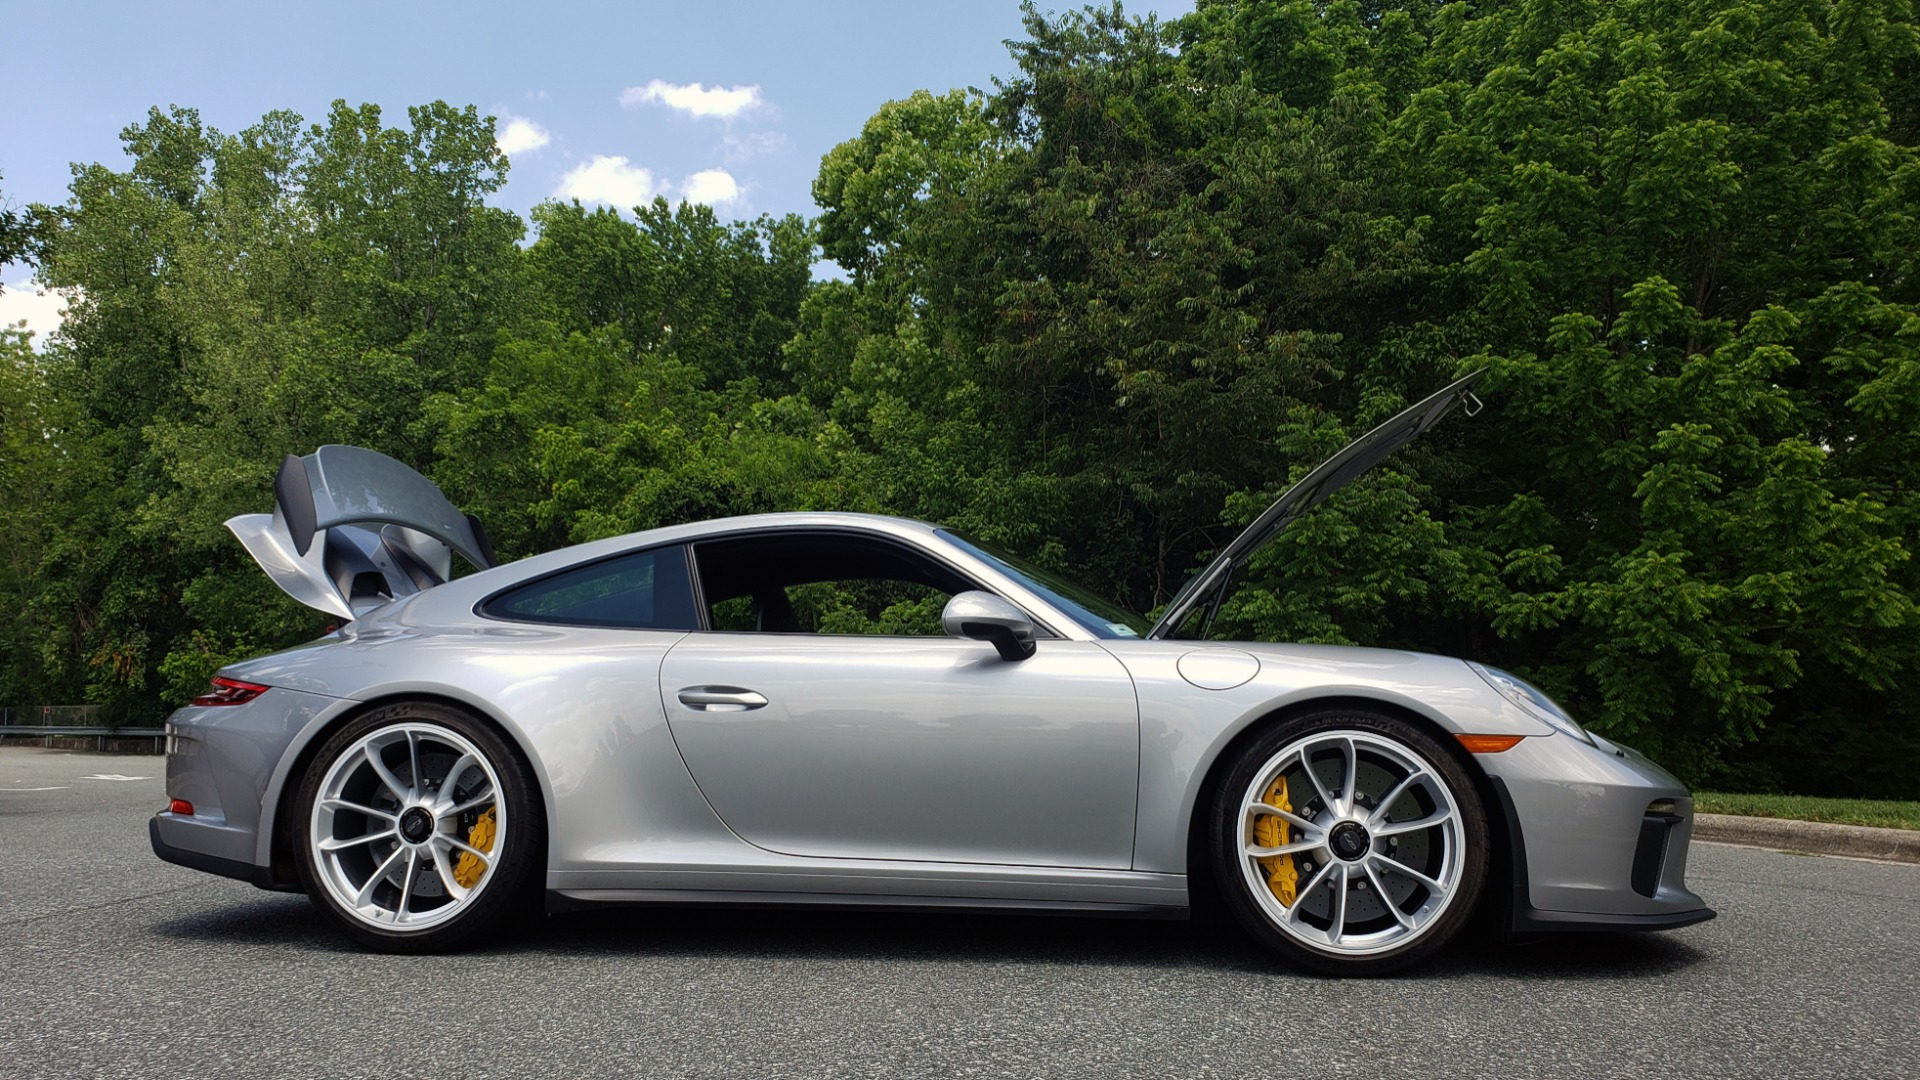 Used 2018 Porsche 911 GT3 4.0L 500HP / 6-SPD MNL / NAV / REARVIEW / PCCB for sale Sold at Formula Imports in Charlotte NC 28227 14